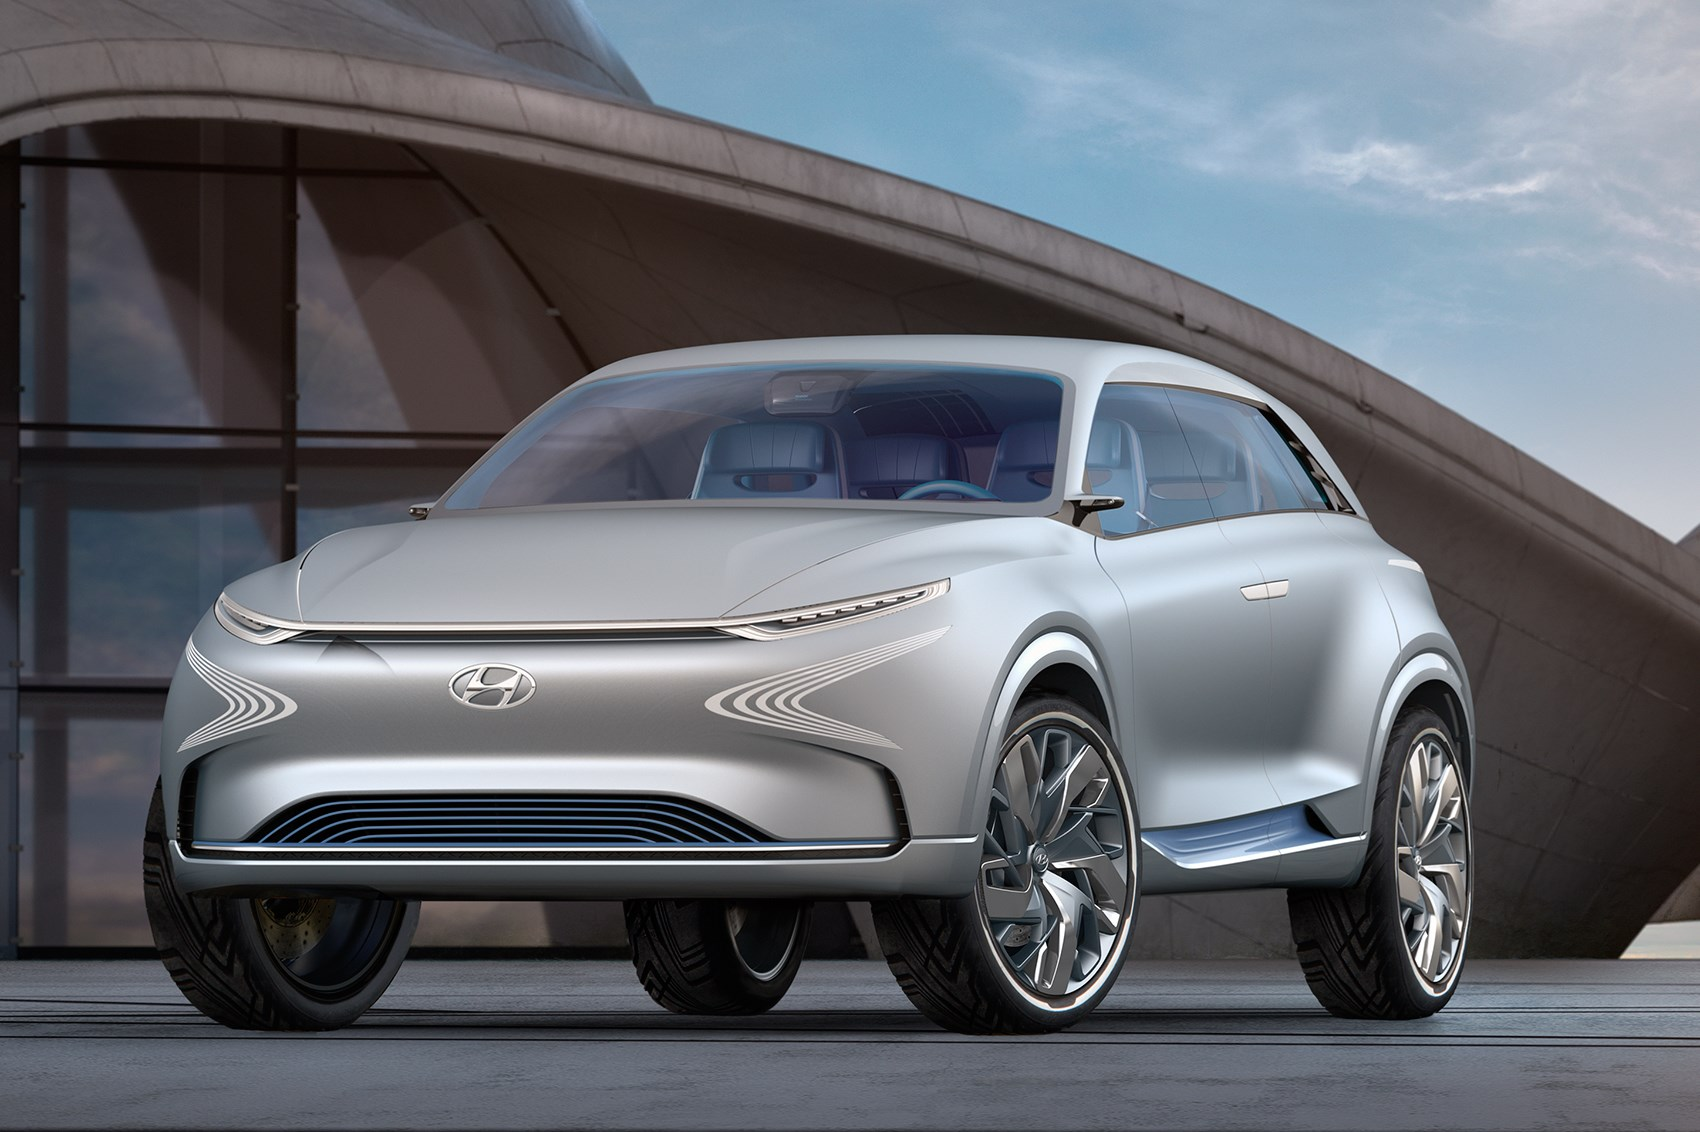 Hyundai FE Fuel Cell Concept unveiled at 2017 Geneva Motor Show